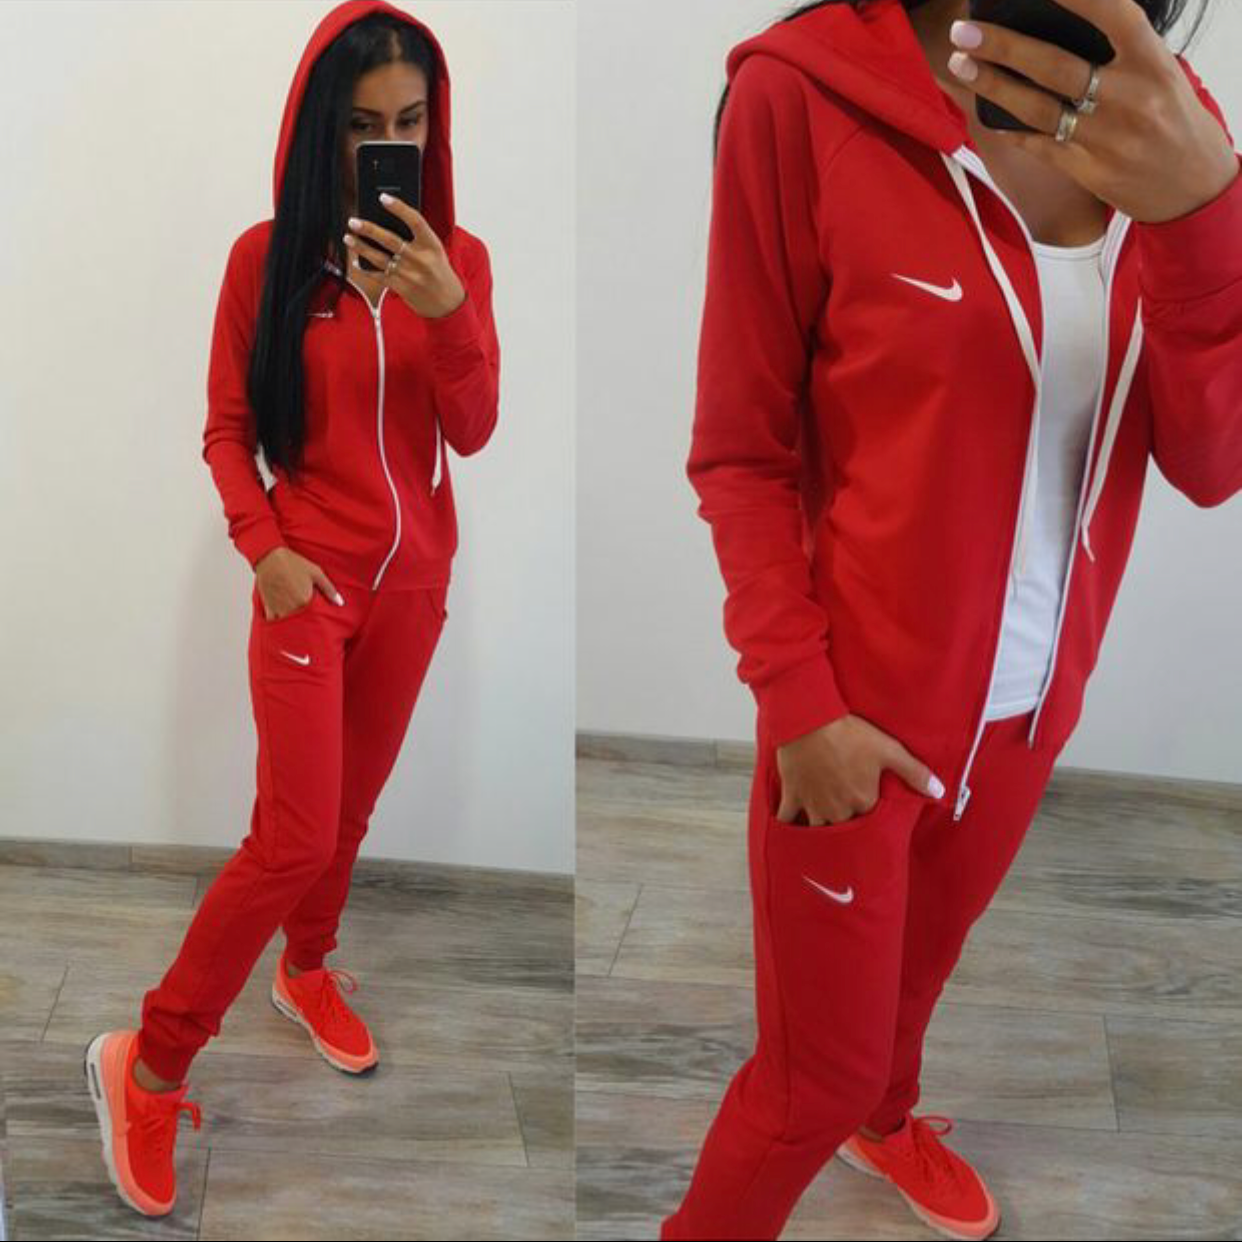 Nike Suit Btsjunior Year Pinterest Hoodies Clothes And Suits